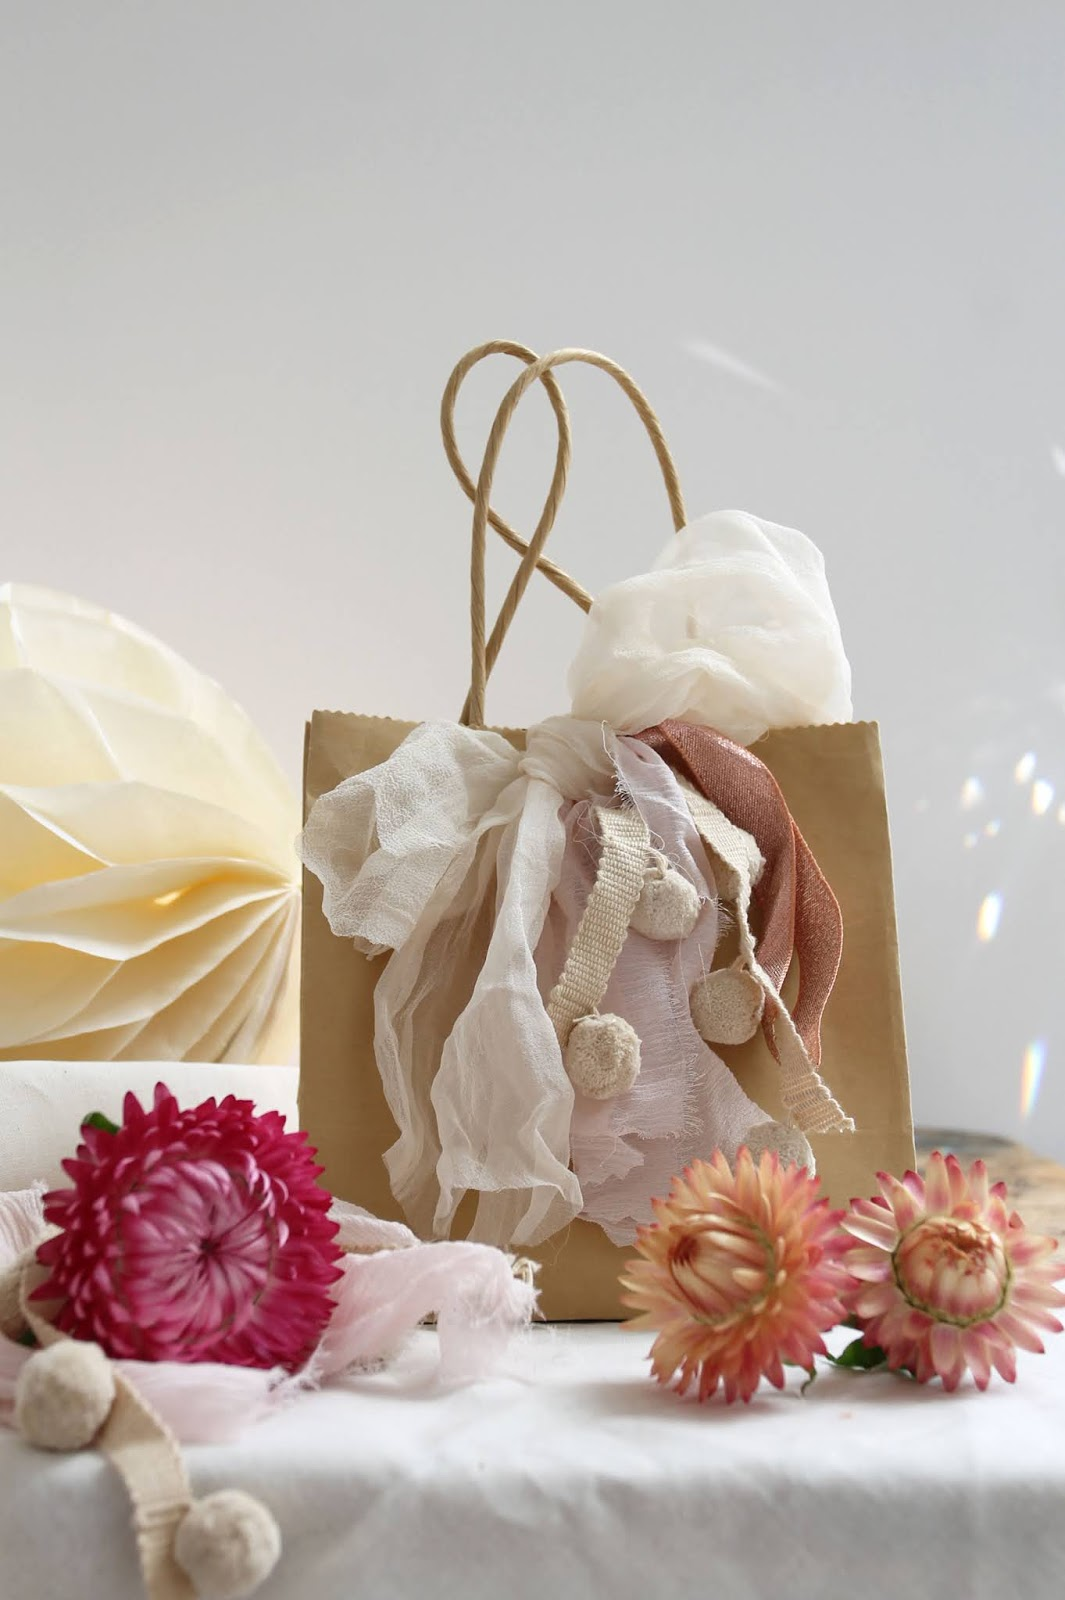 DIY – Decorated Gift Bags